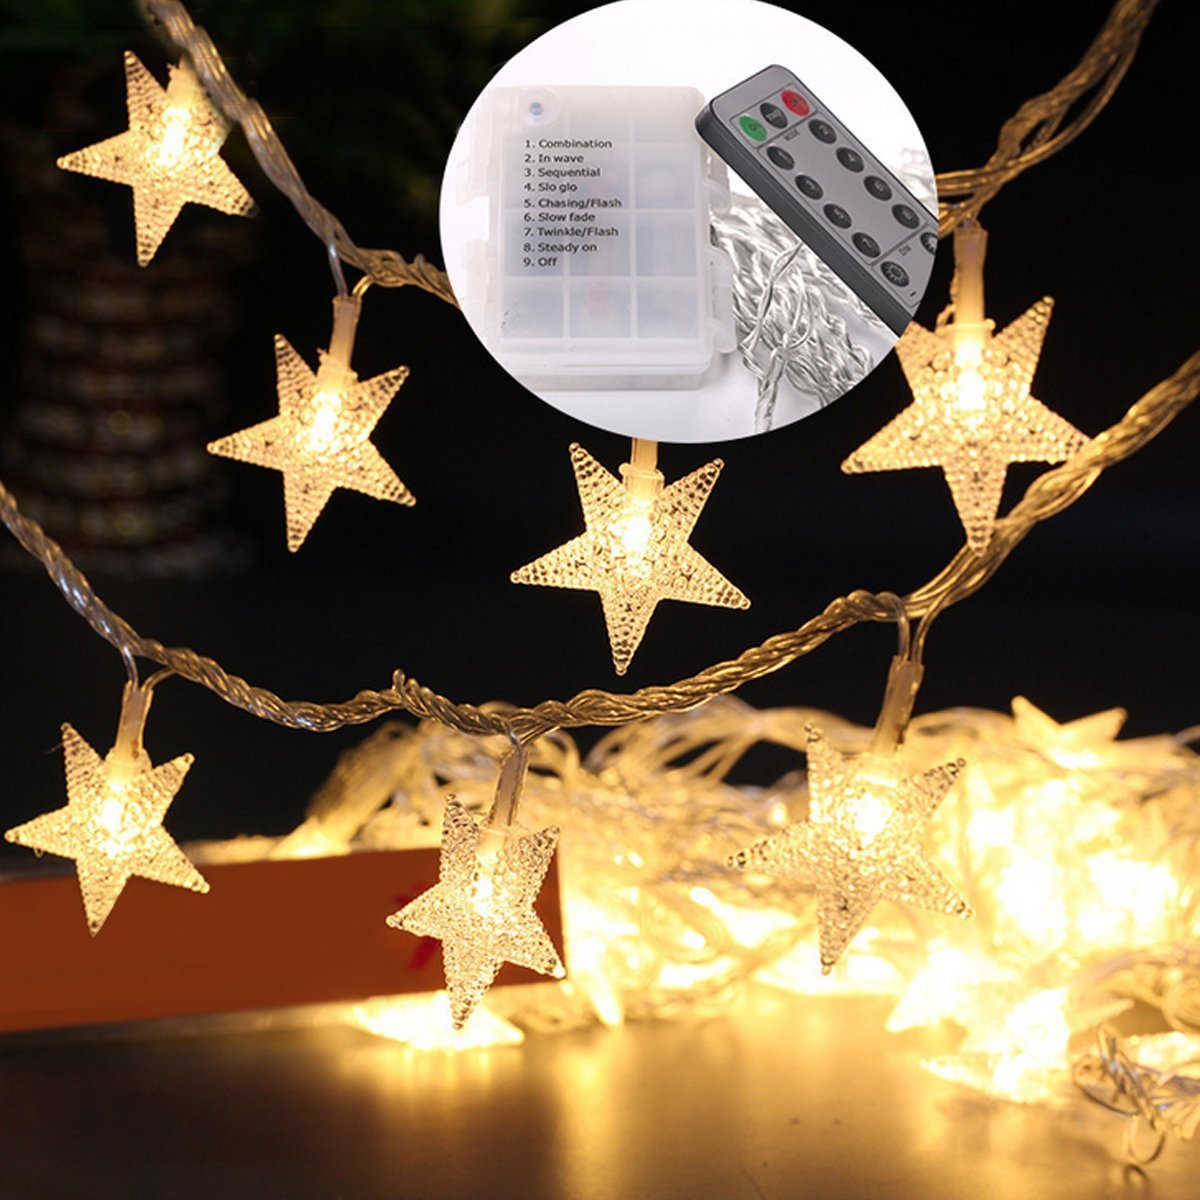 Indoor Party Star LED String Lights Battery Powered 16 Feet 40 LED Bedroom Fairy String Lights for Christmas Garden, Wedding Decoration (Warm White)